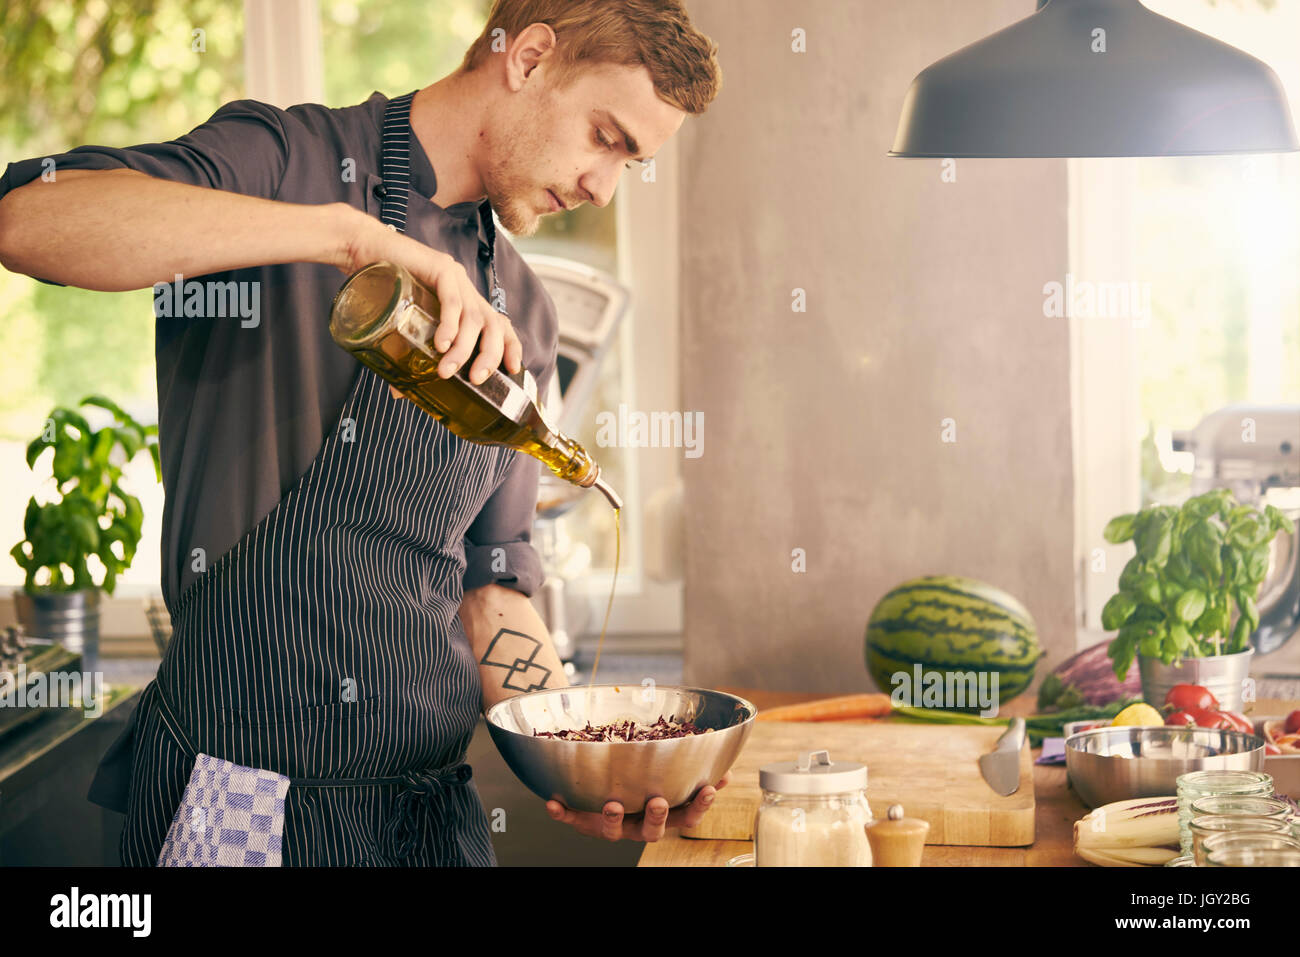 Chef drizzling oil on bowl of food - Stock Image